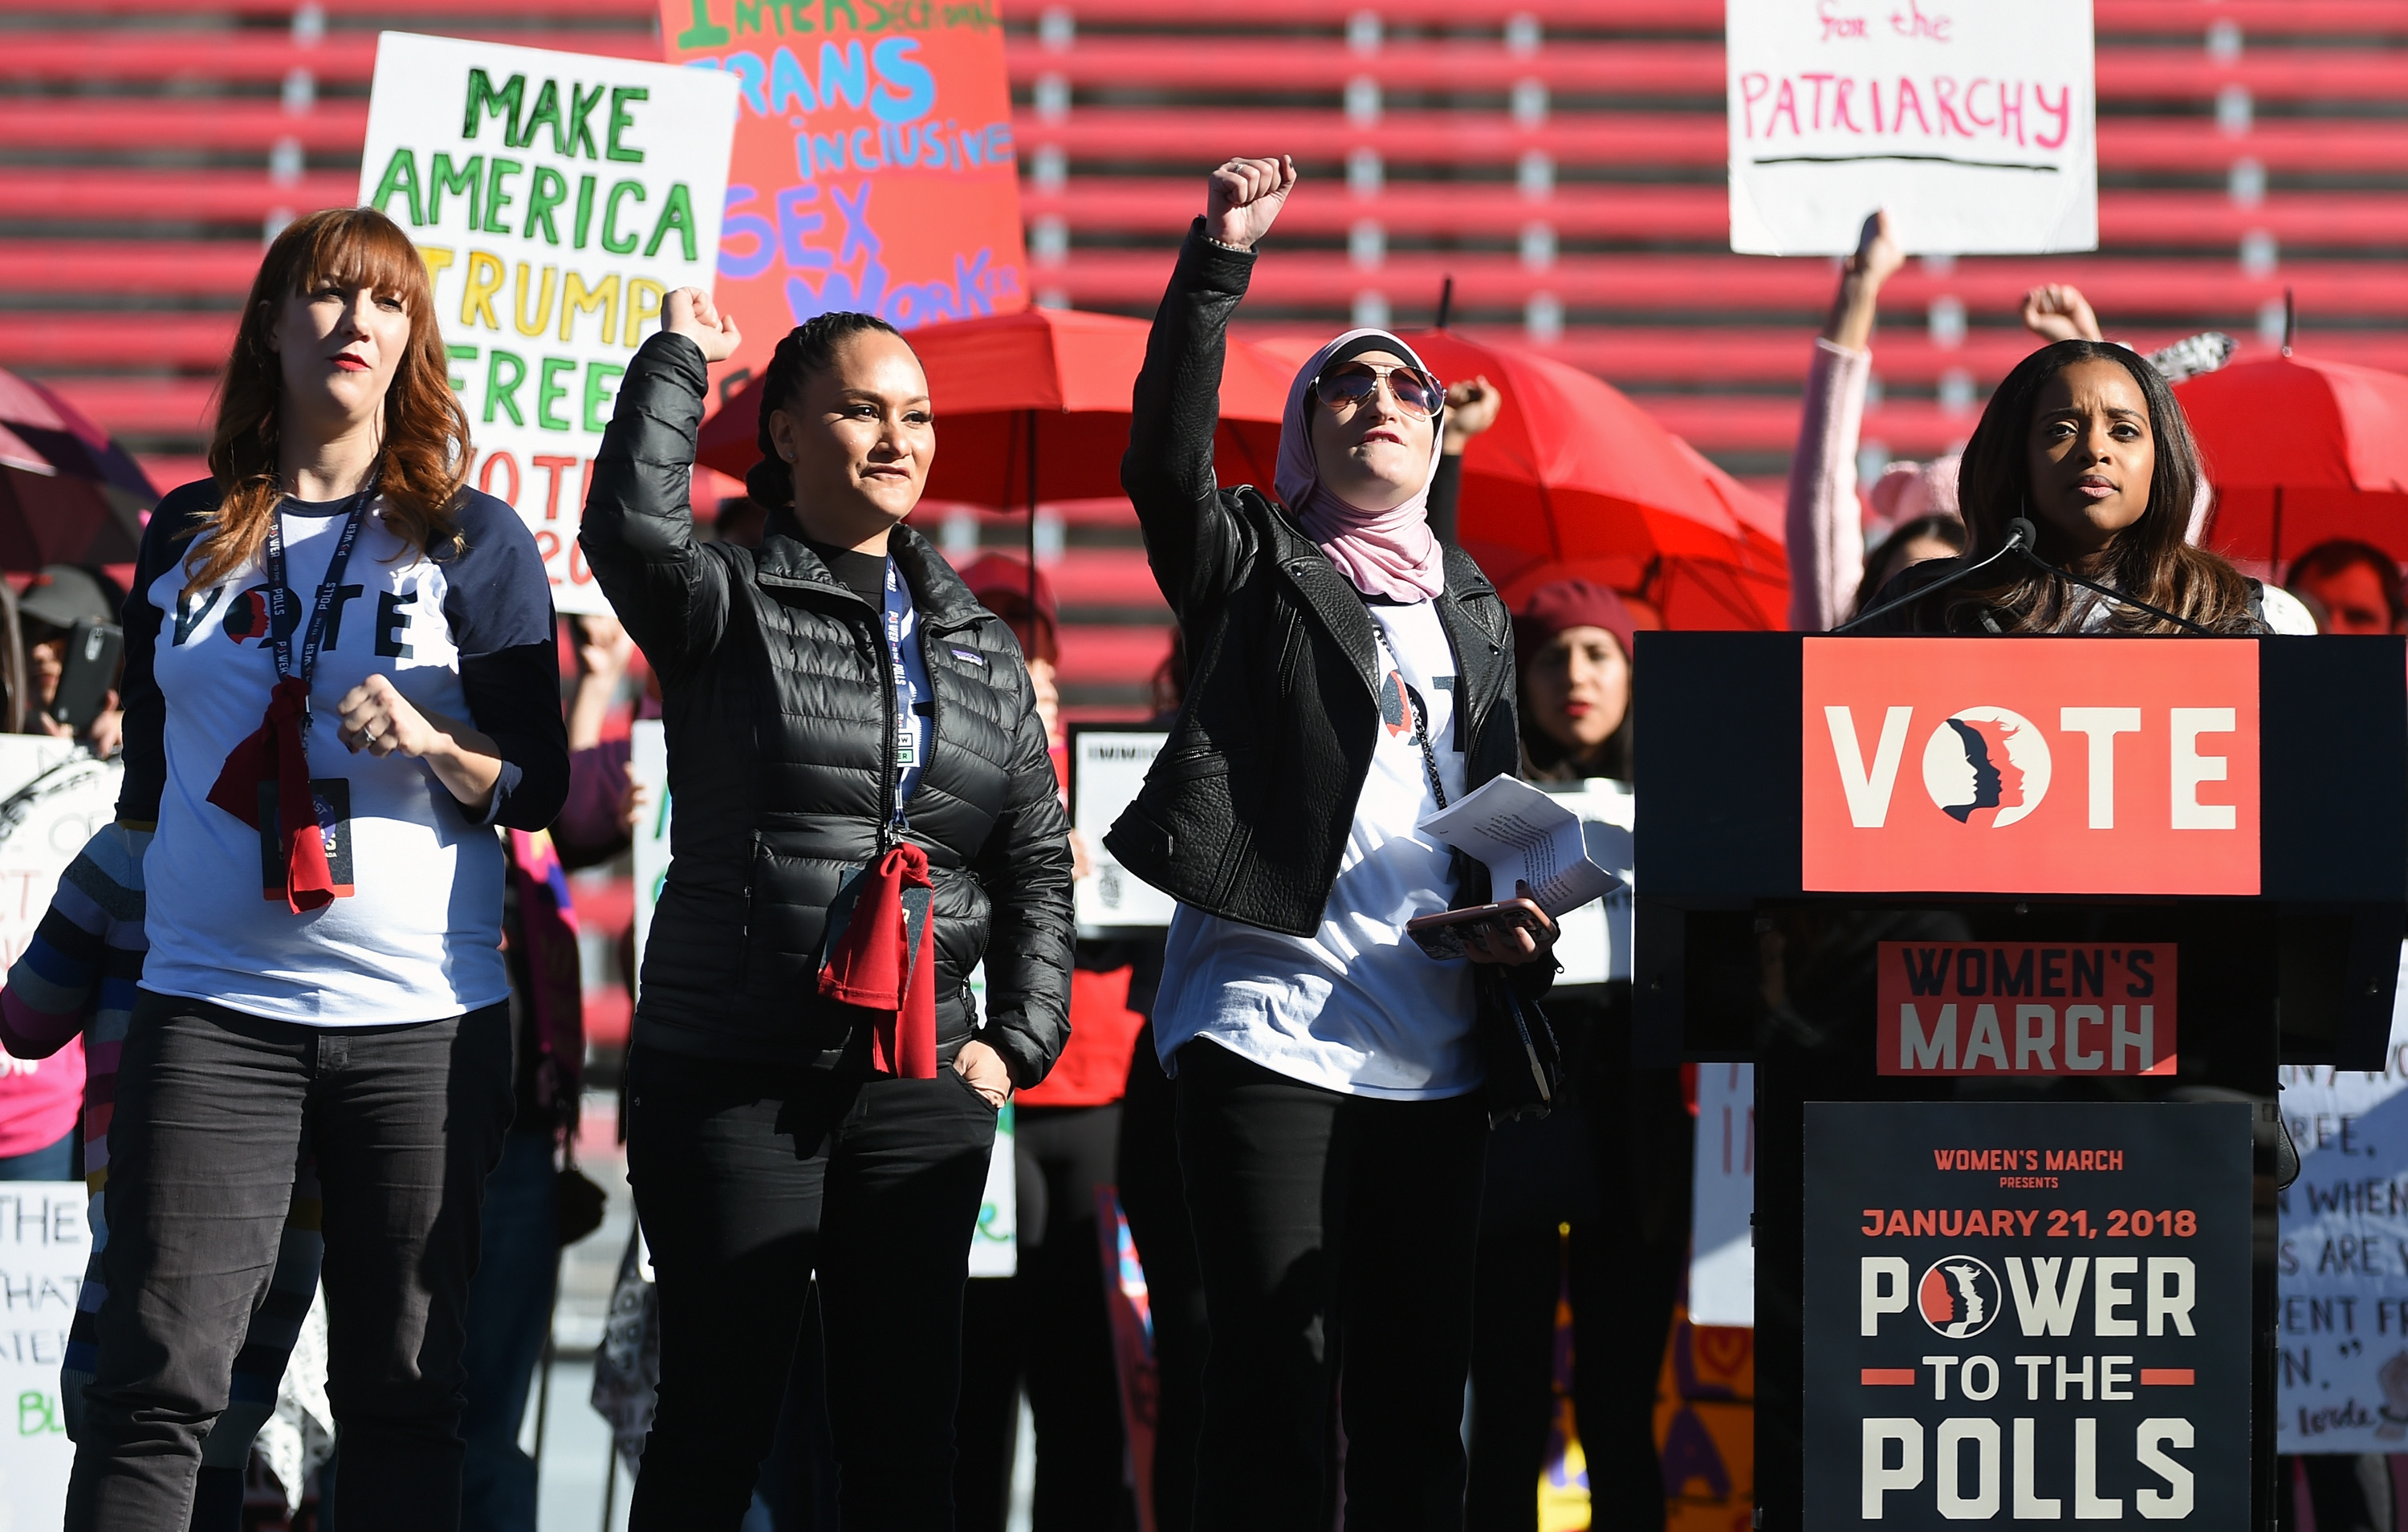 Anti-Semitism concerns leave the future of the Women's March in doubt